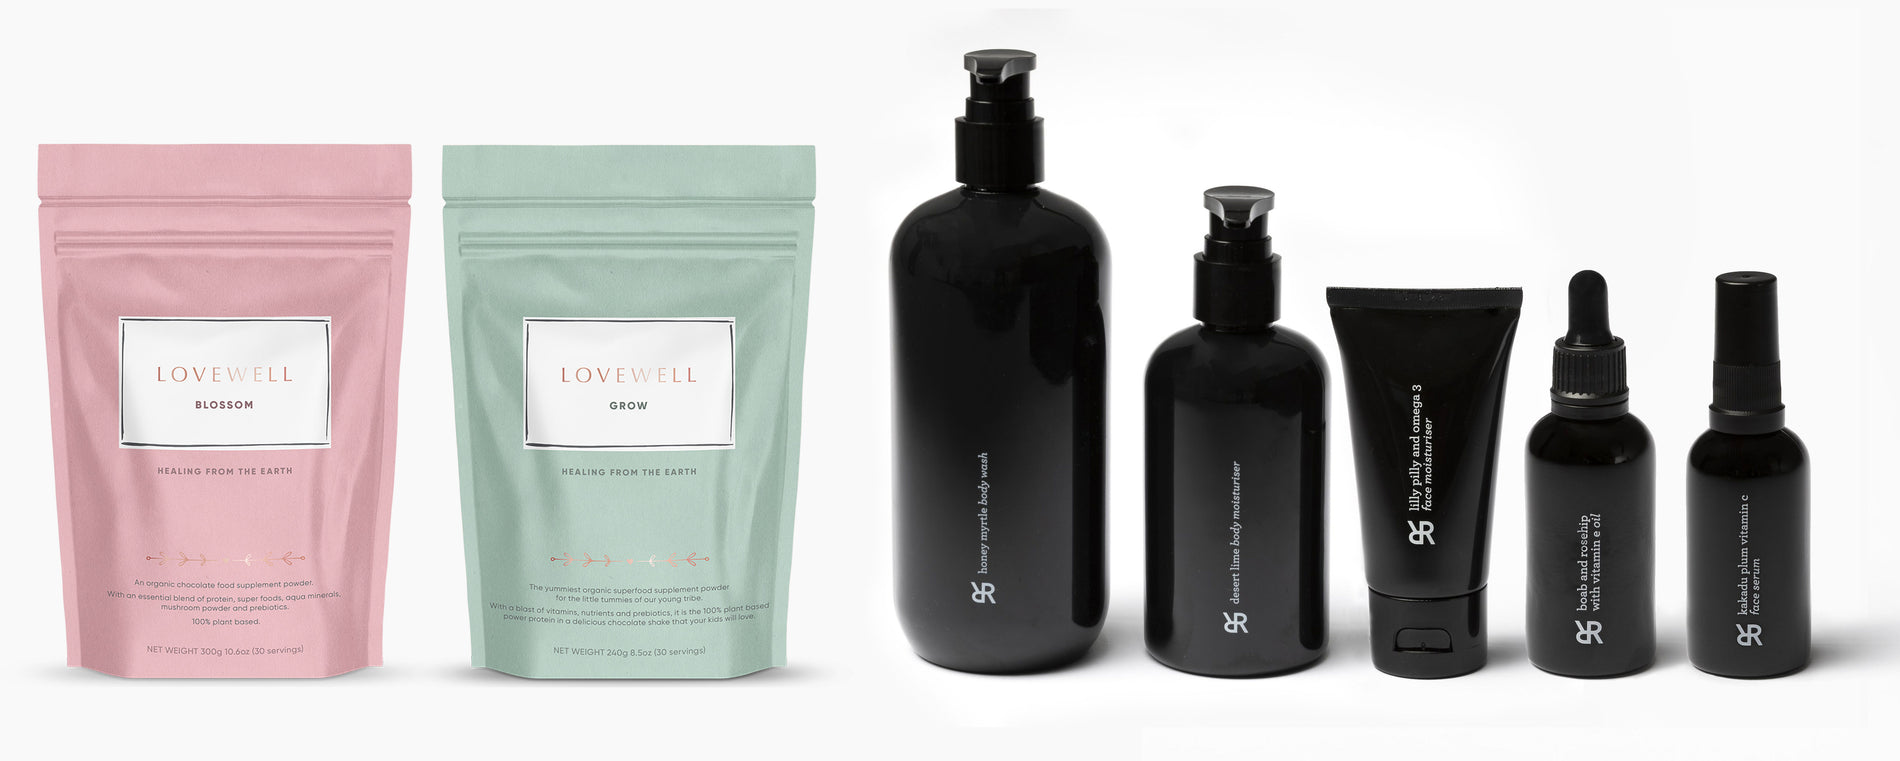 Rohr Remedy x Lovewell Giveaway